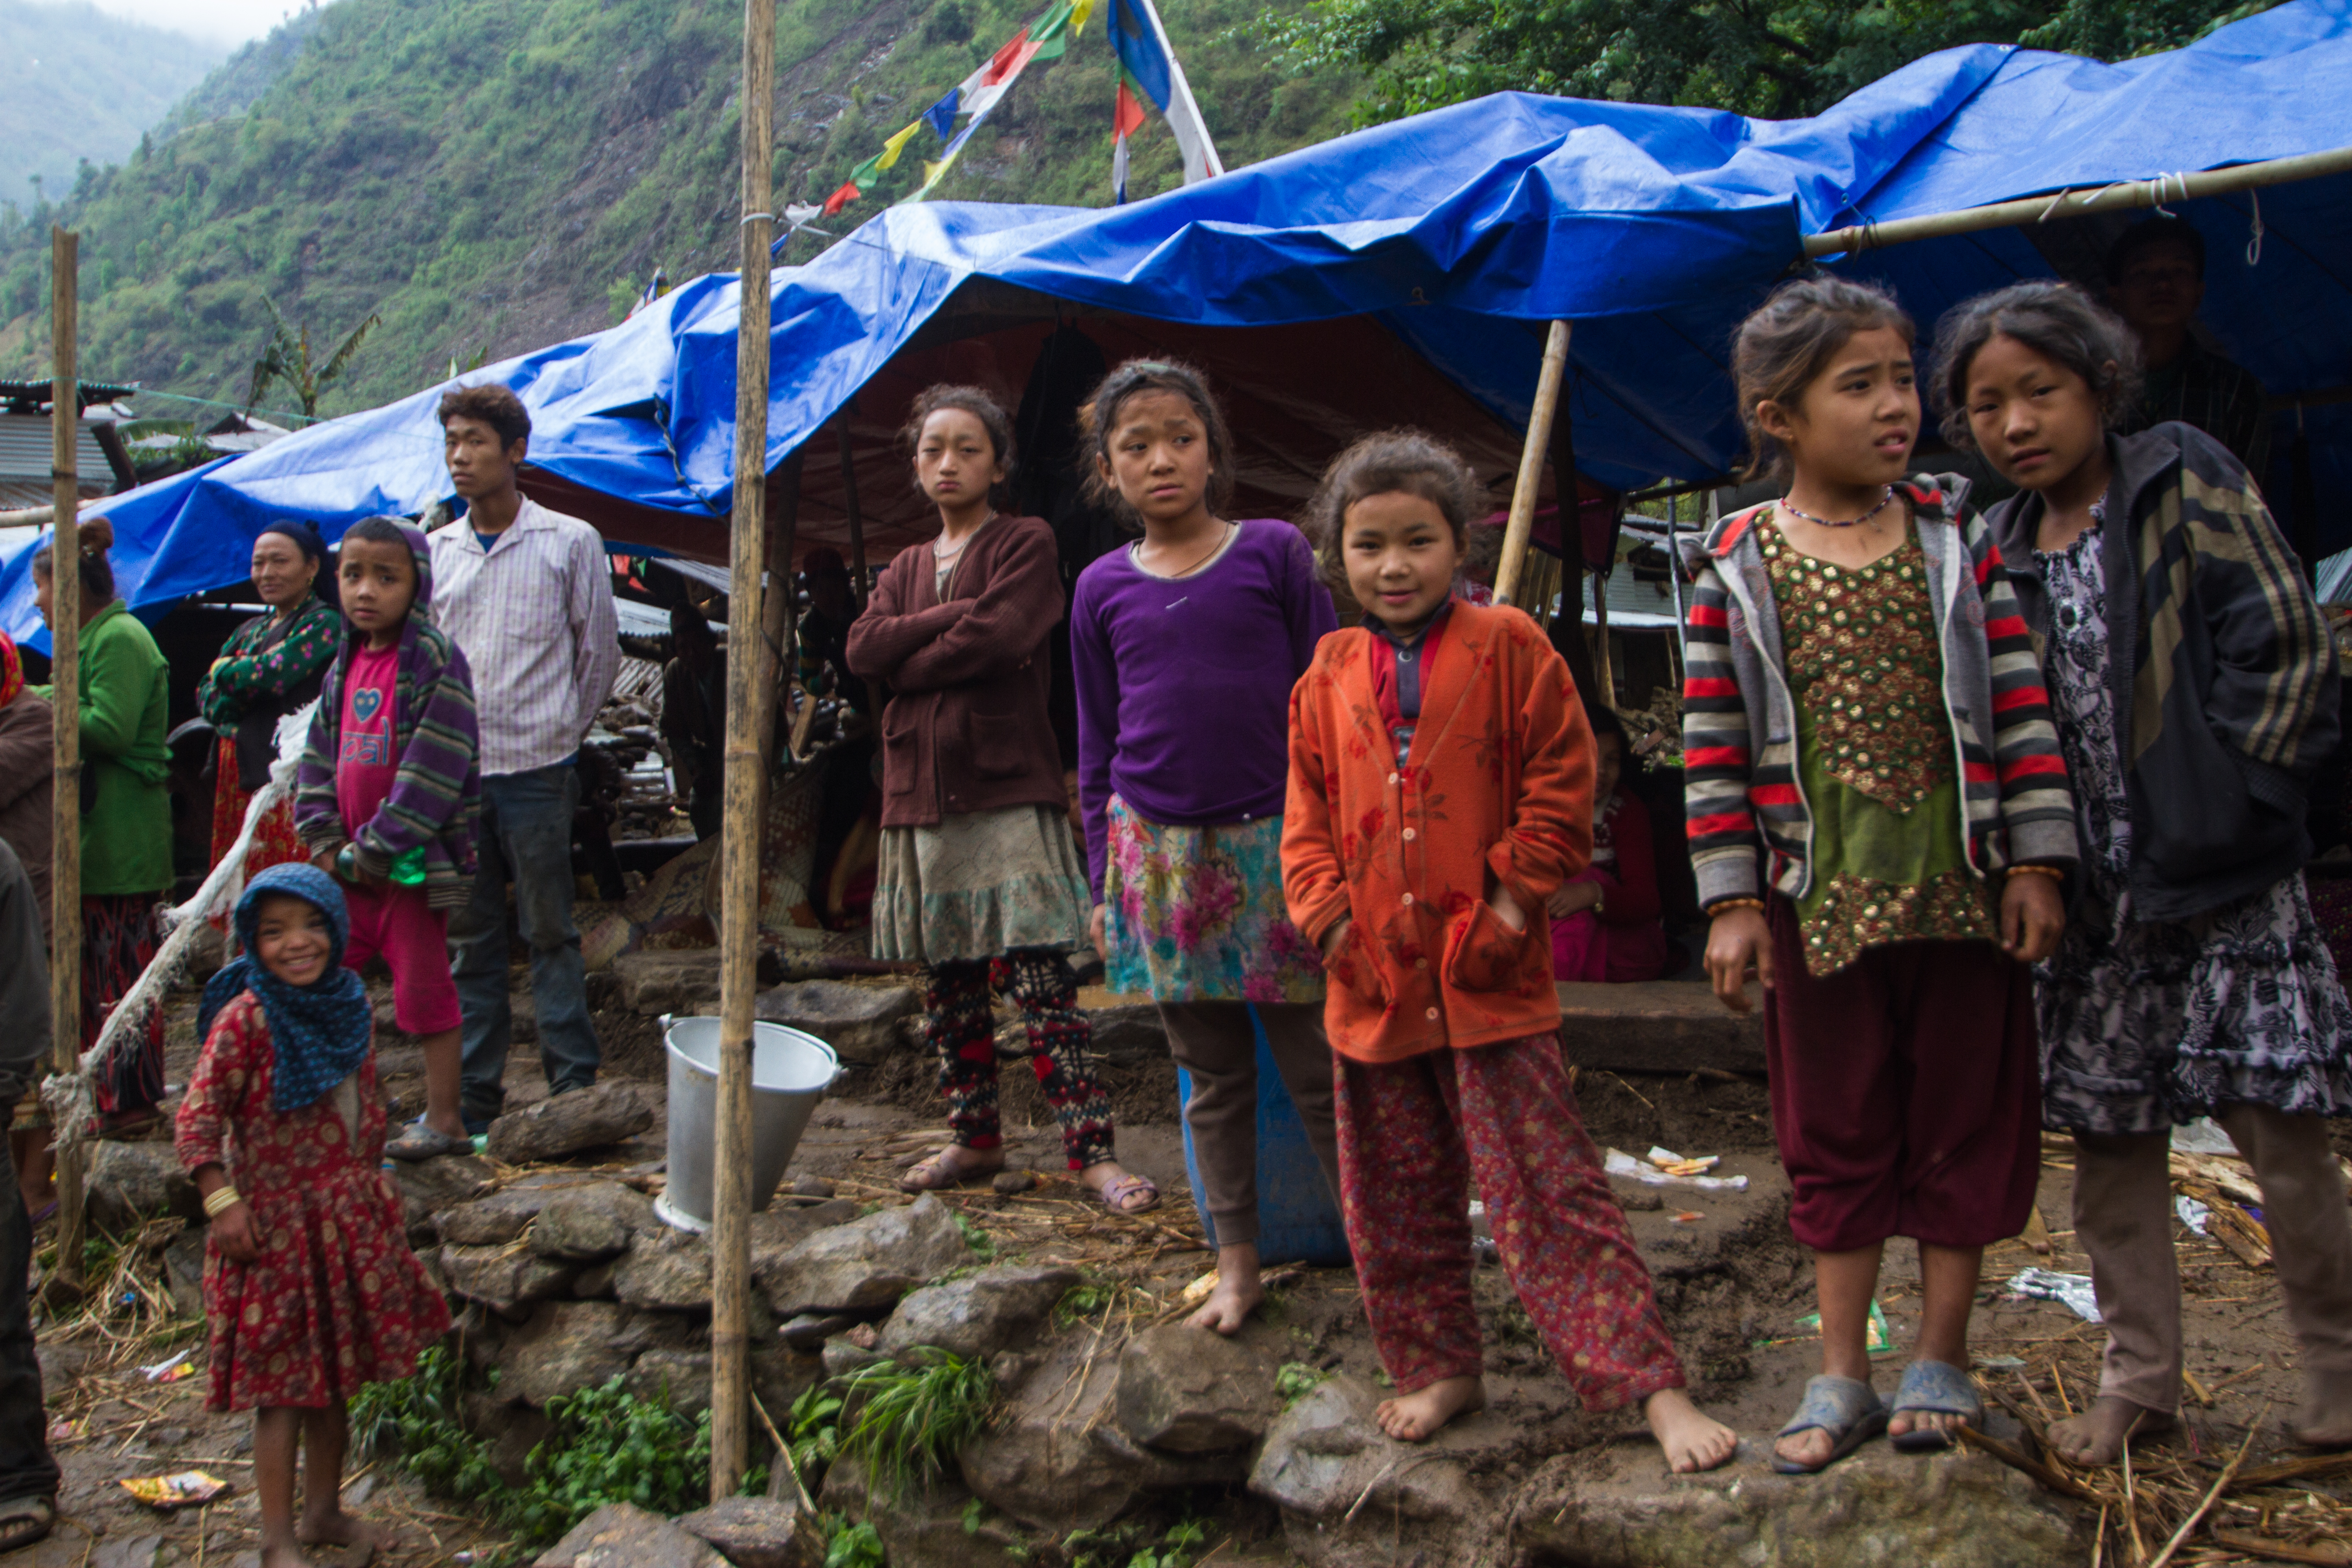 Like many in rural Nepal, the villagers of Ghyangphedi are still waiting for relief five days after a devastating earthquake